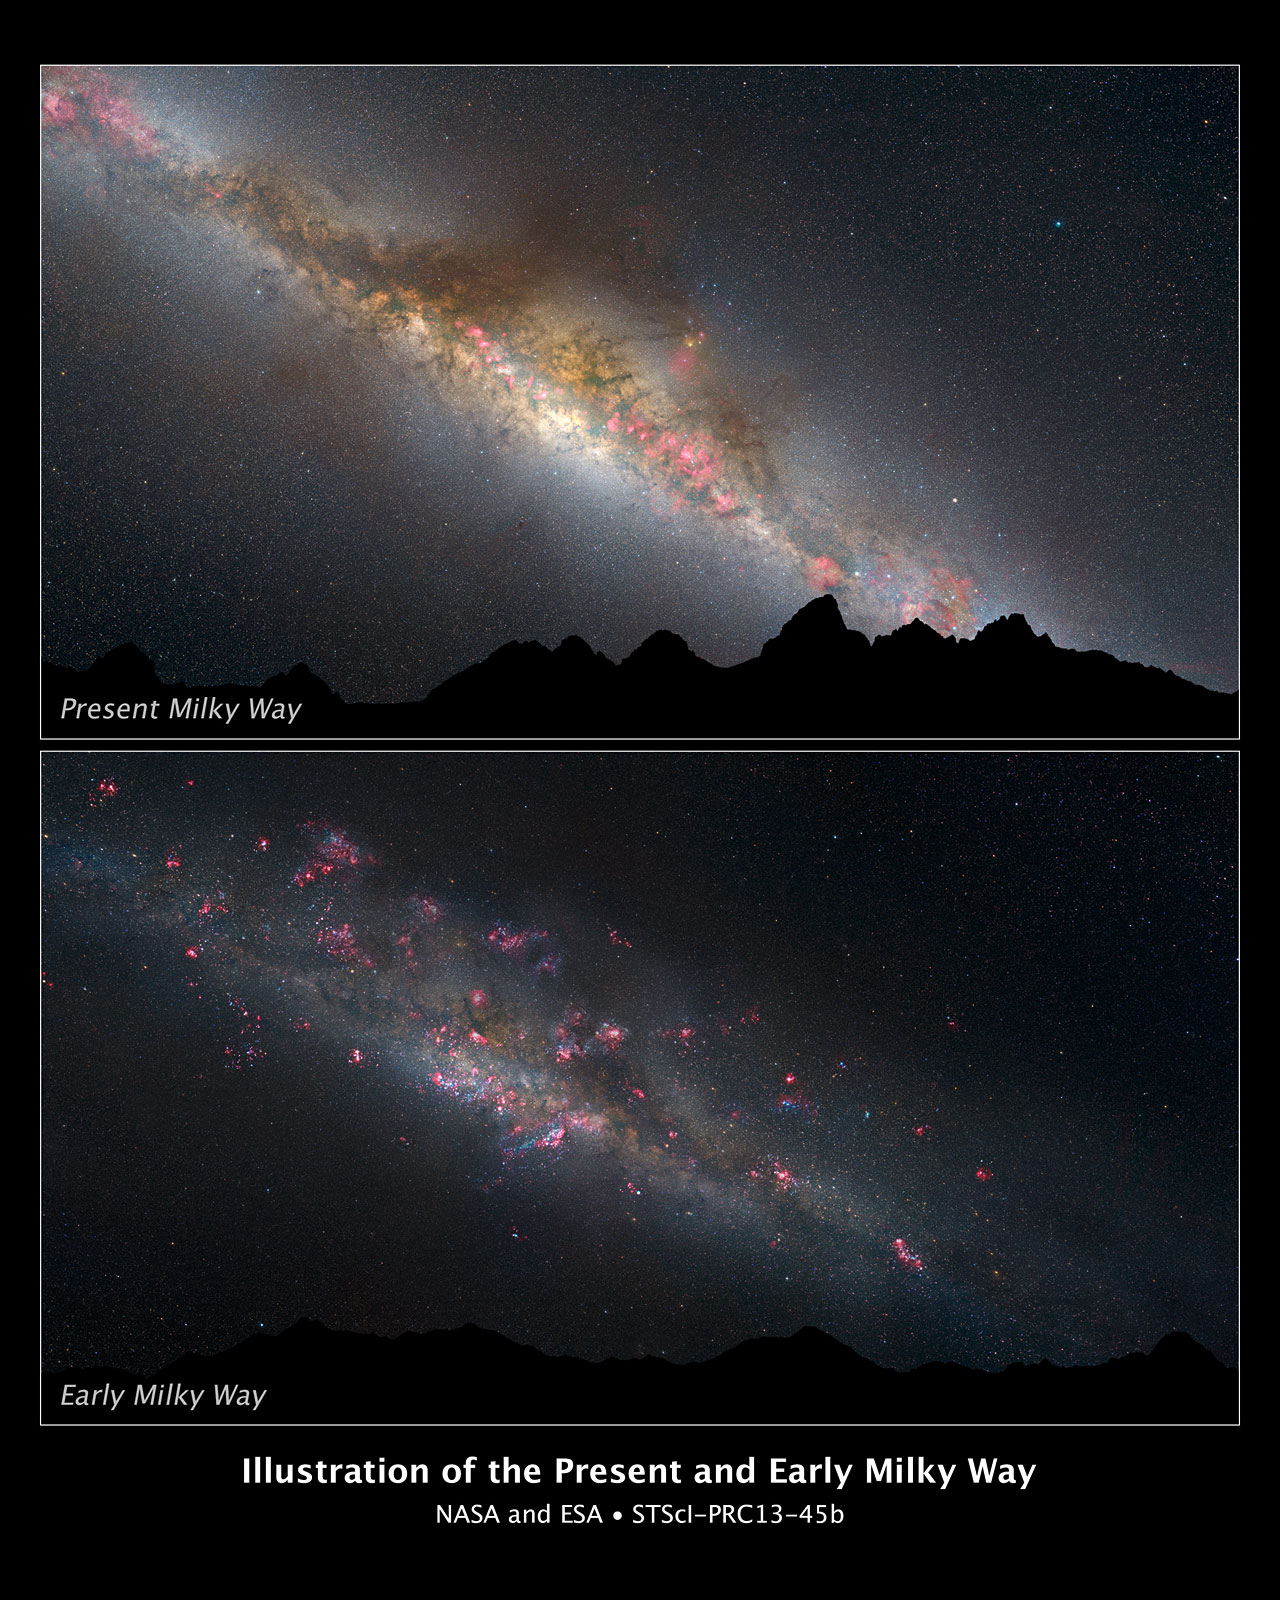 The present and early Milky Way (artist's illustration)